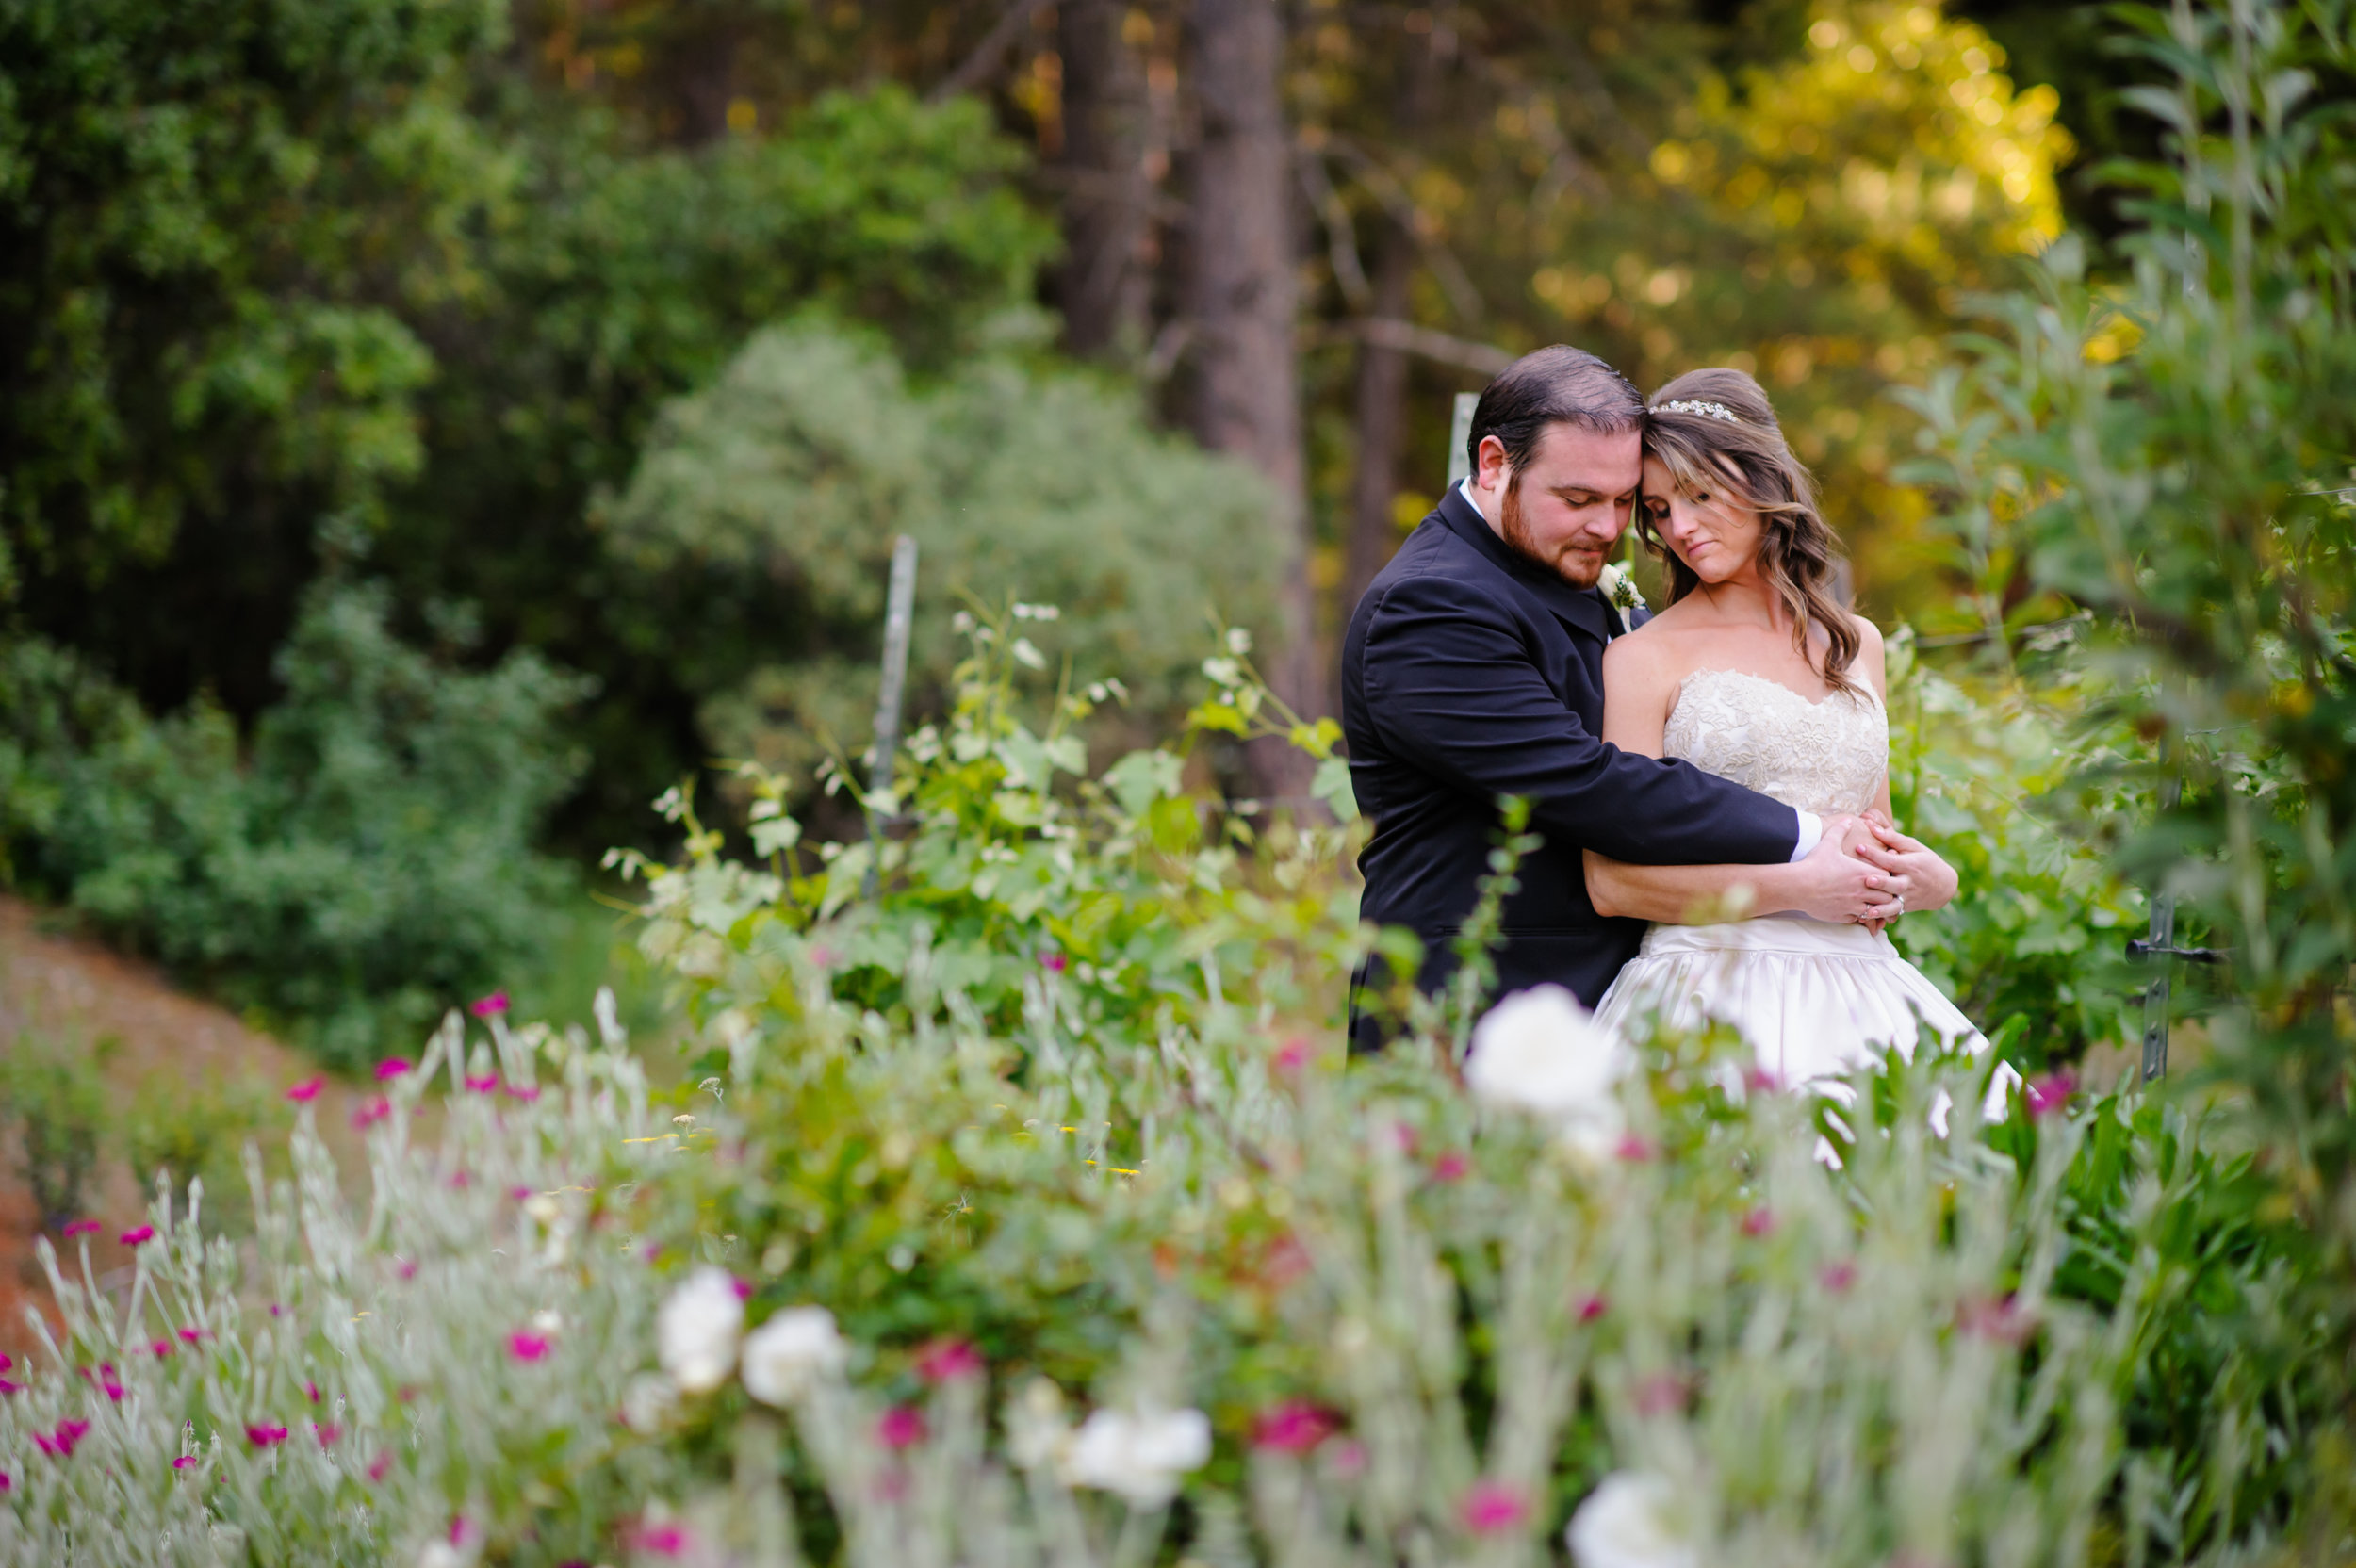 lindsey-charlie-076-monte-verde-inn-foresthill-wedding-photographer-katherine-nicole-photography.JPG